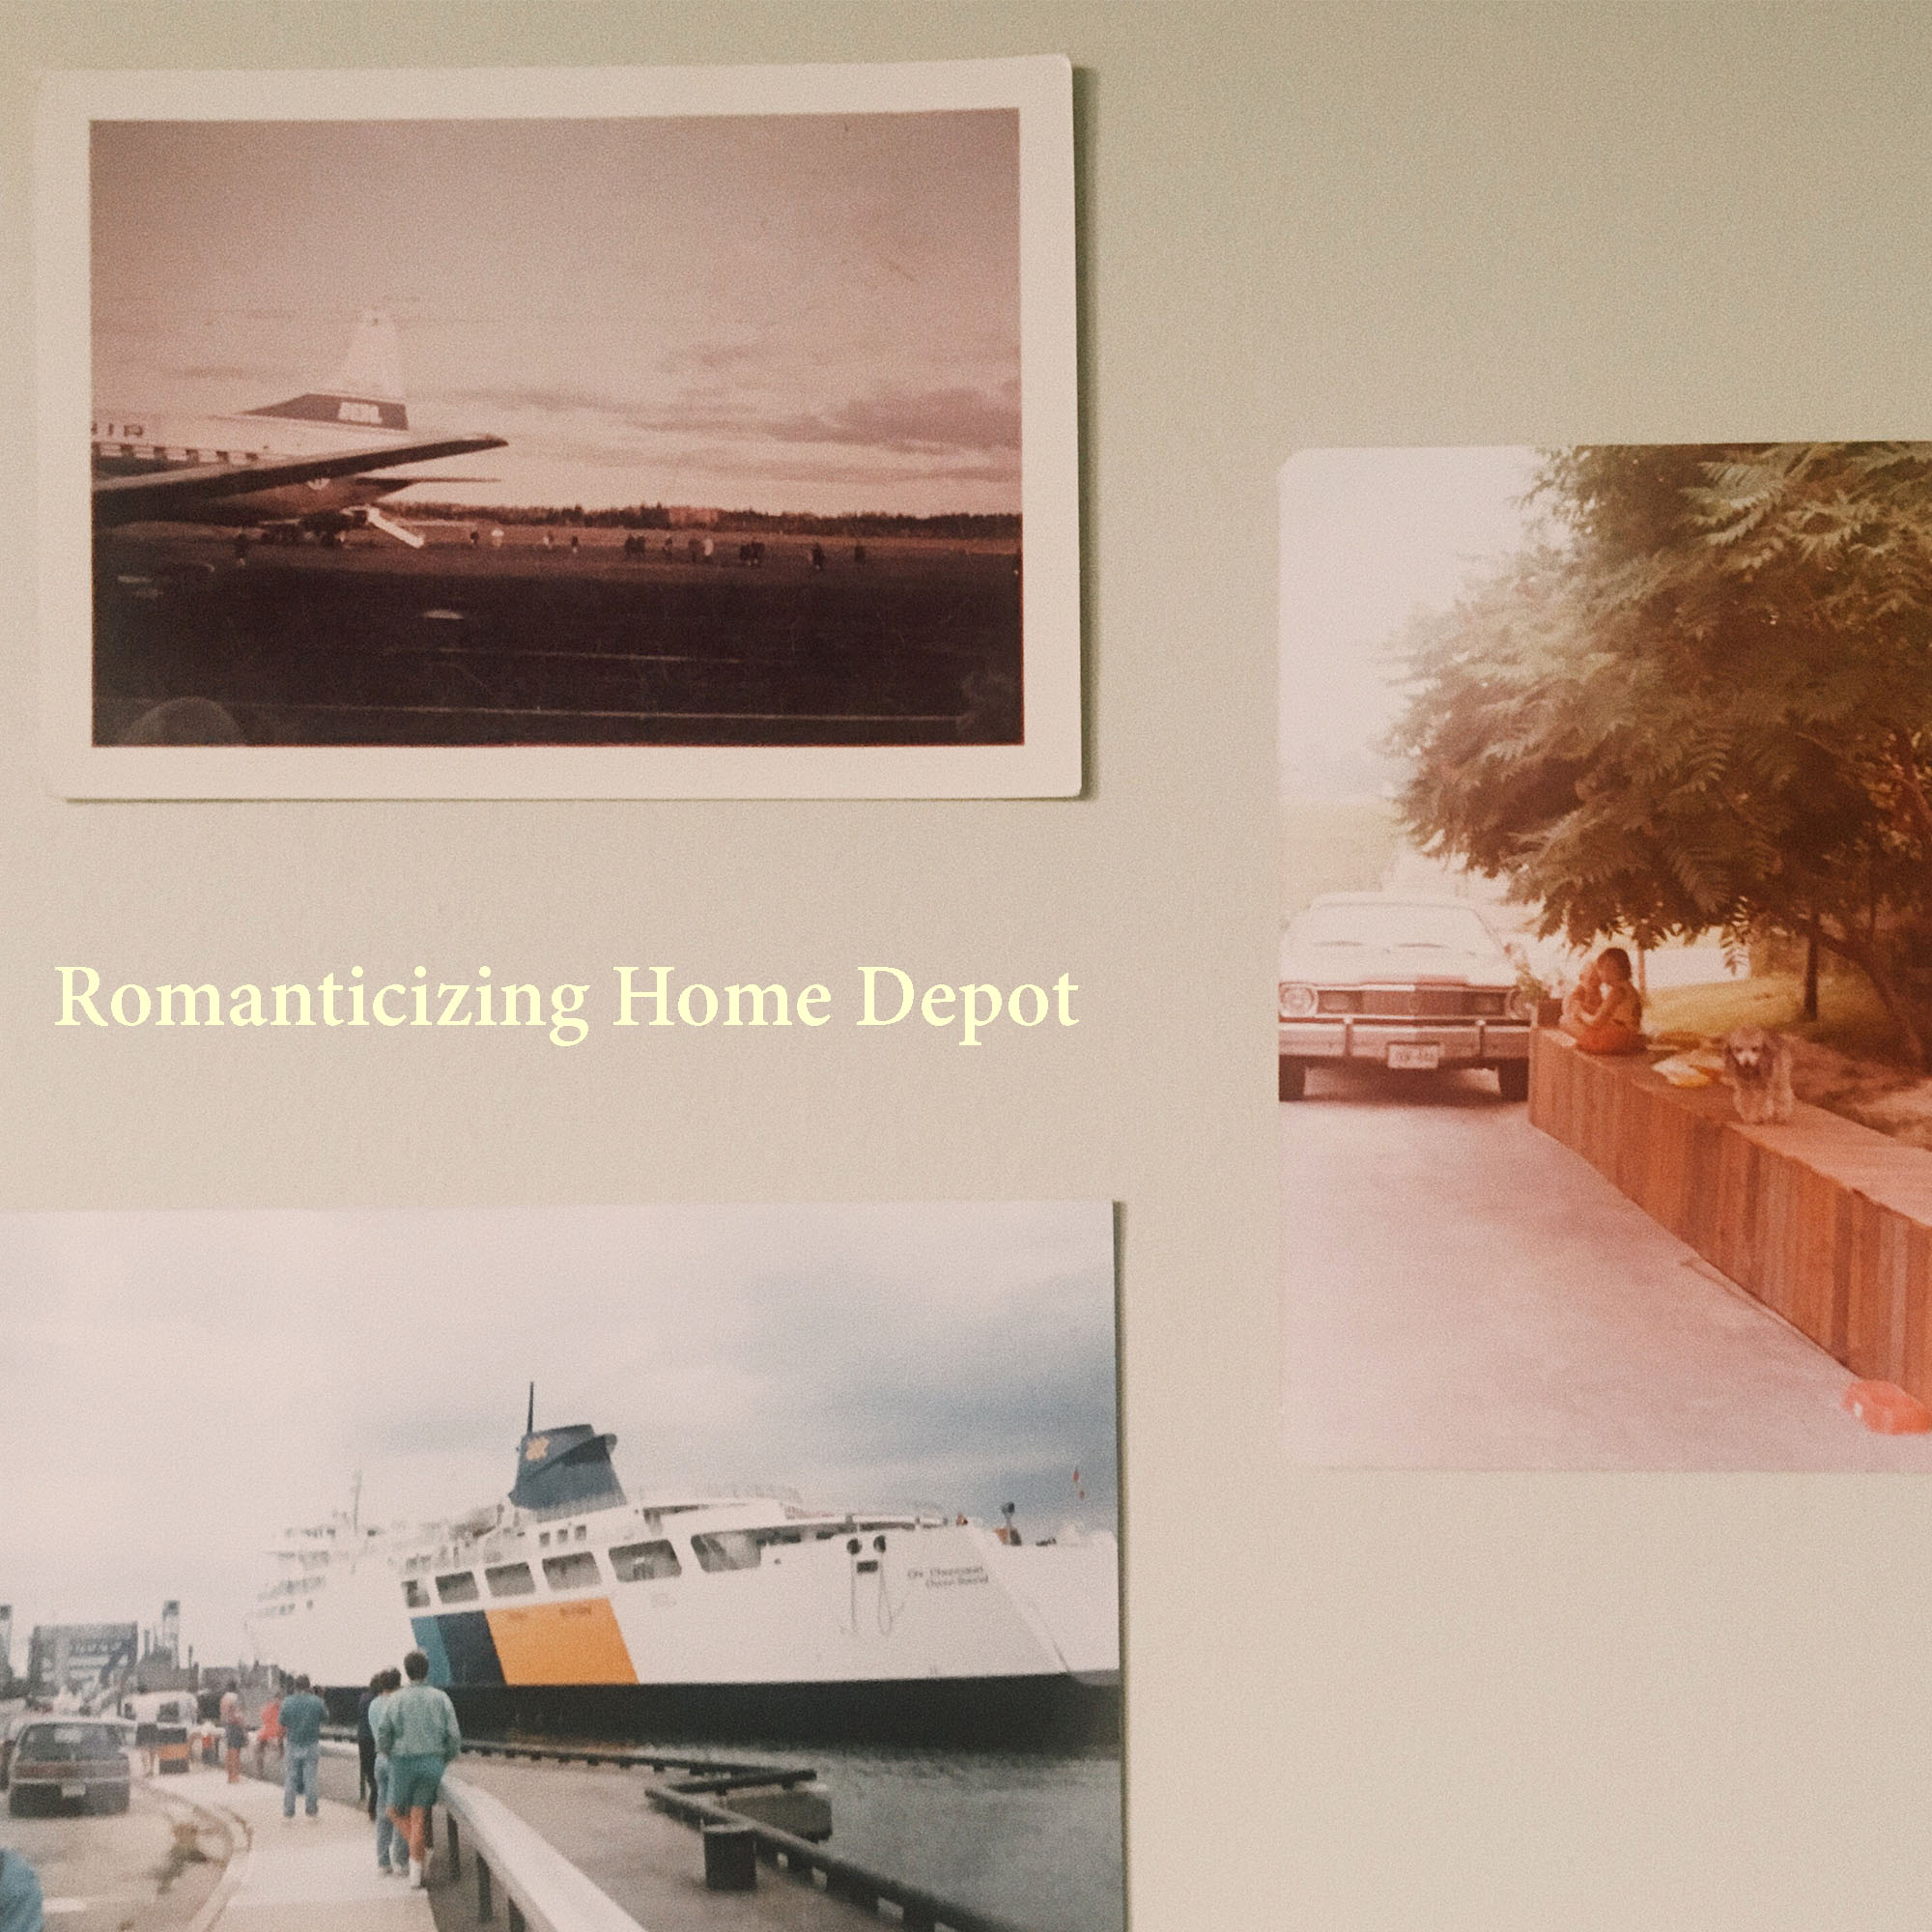 Romanticizing Home Depot   Romanticizing Home Depot, a playlist for those who romanticize hardware stores. By Saara Laidlaw.